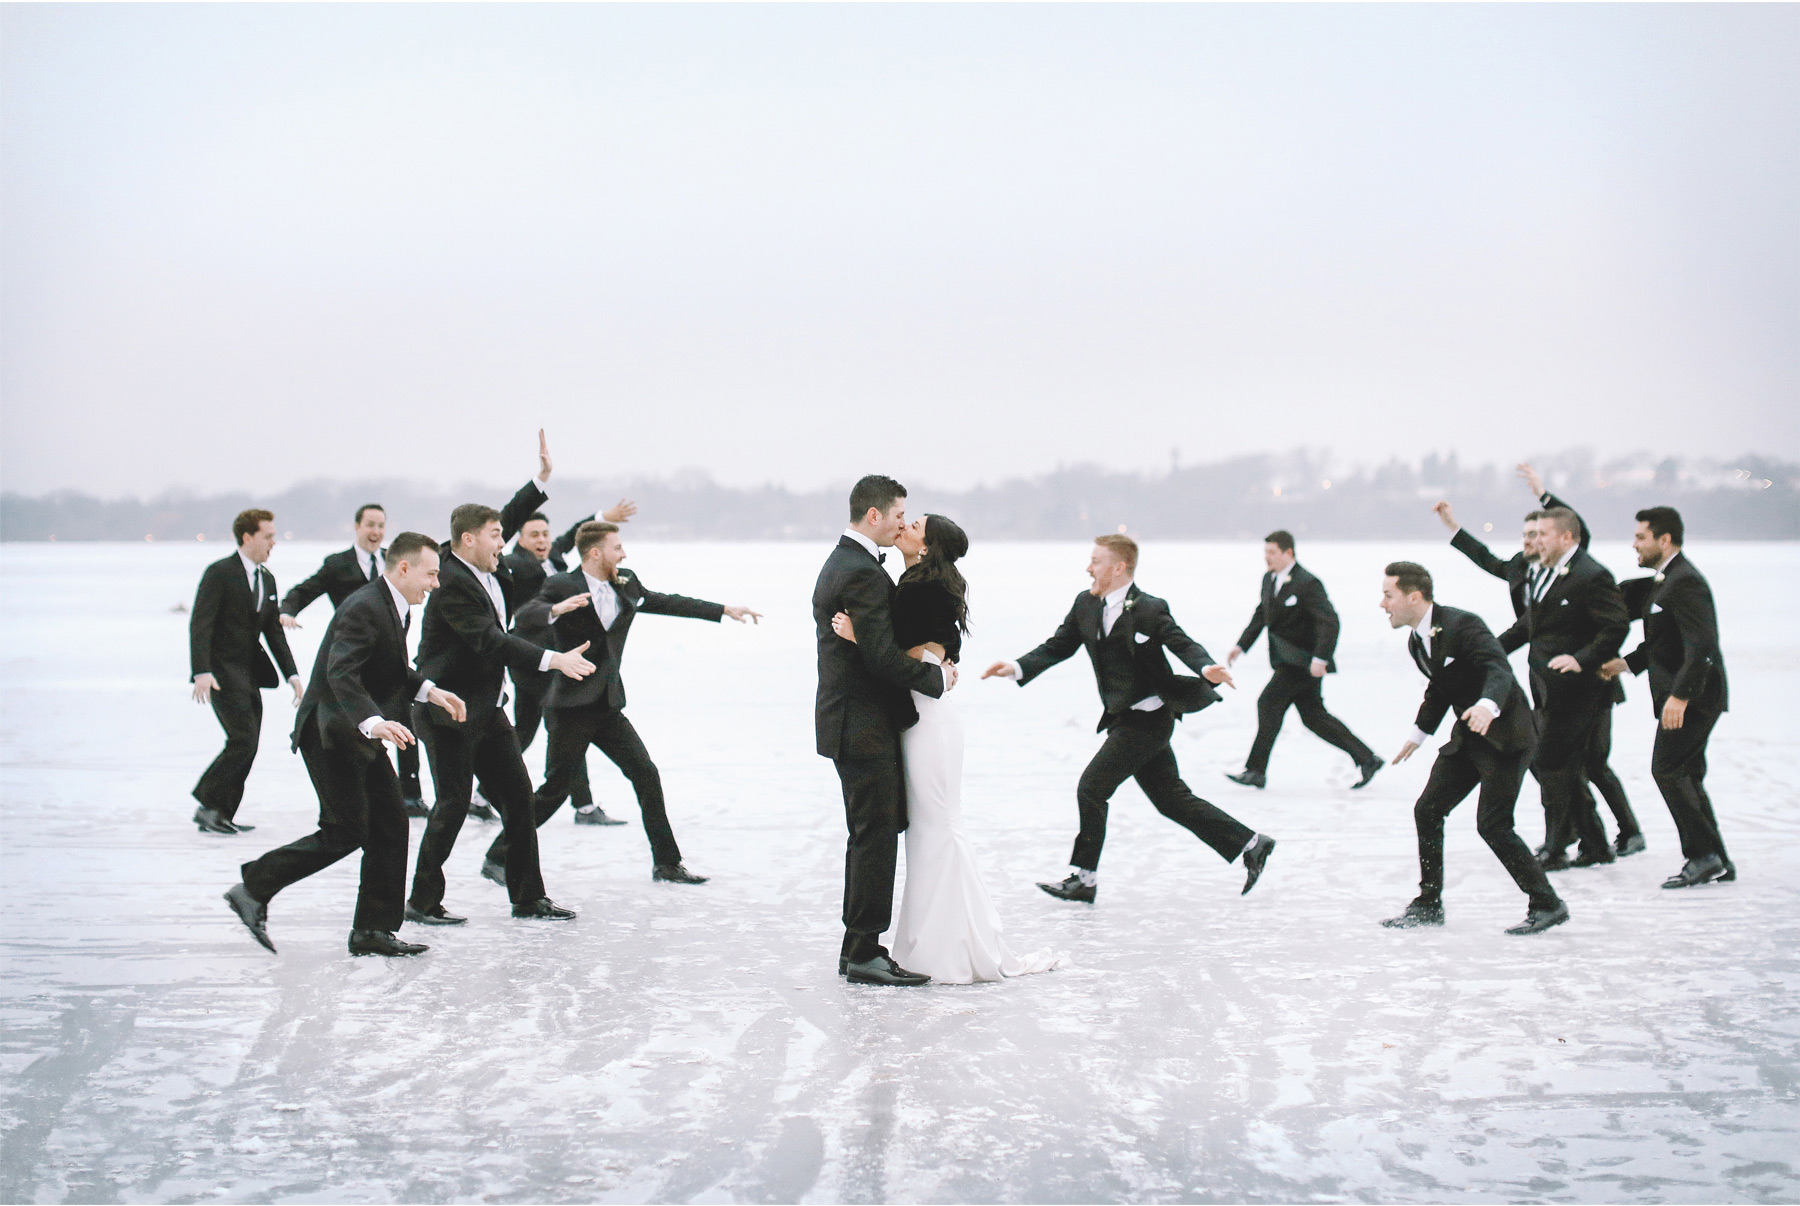 16-Minneapolis-Minnesota-Wedding-Photographer-by-Vick-Photography-Winter-Wedding-Frozen-Lake-Groomsmen-Snow-Maggie-and-Matt.jpg